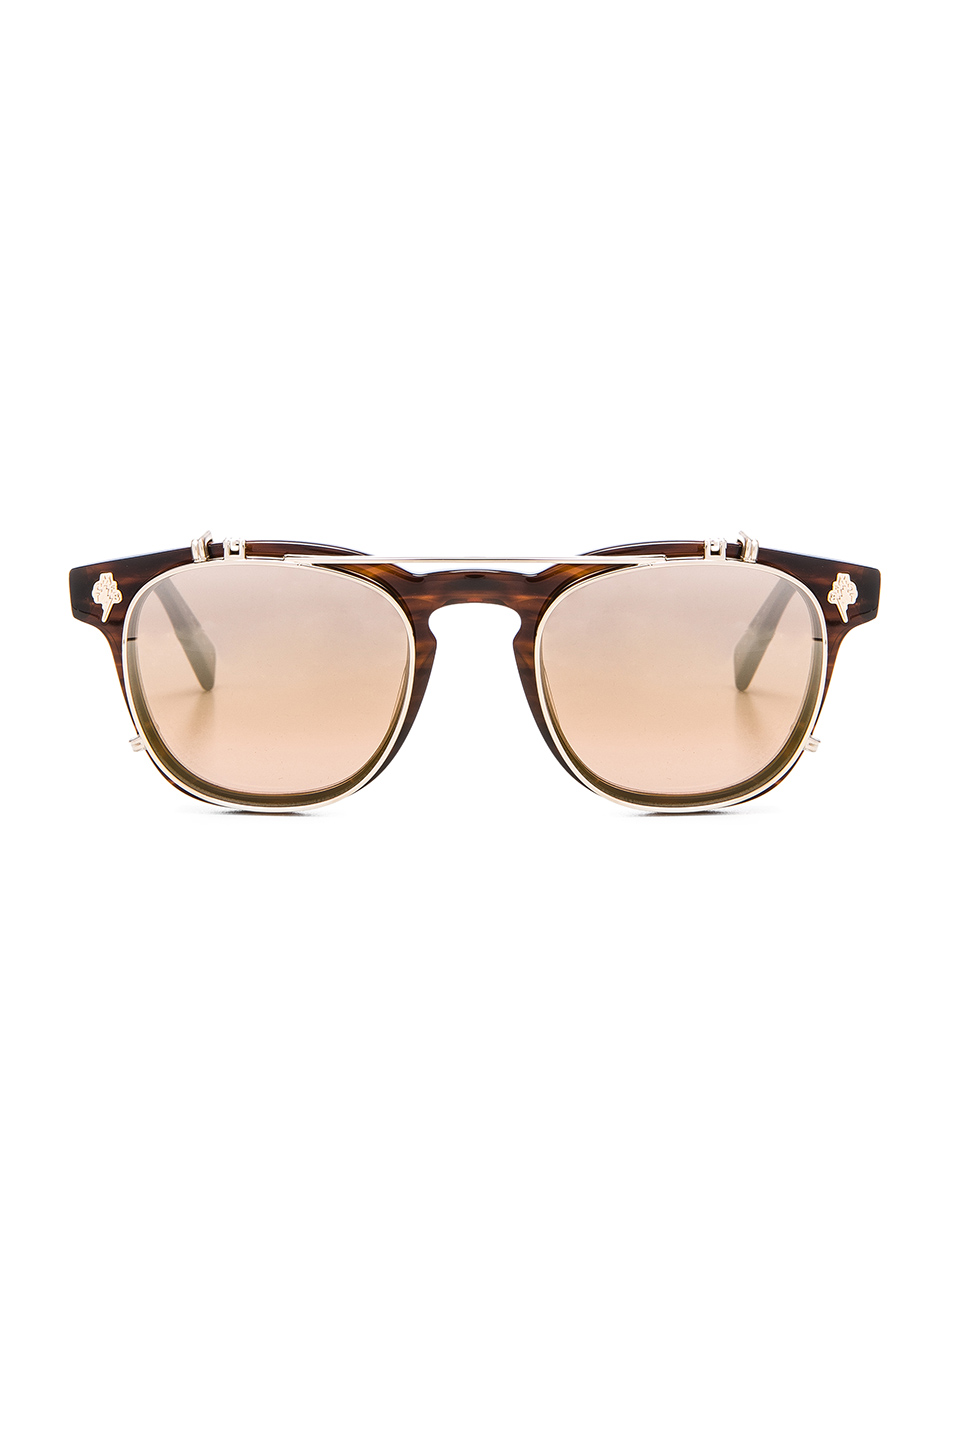 Garrett Leight x Mark McNairy Valdese 46 in Brown,Animal Print